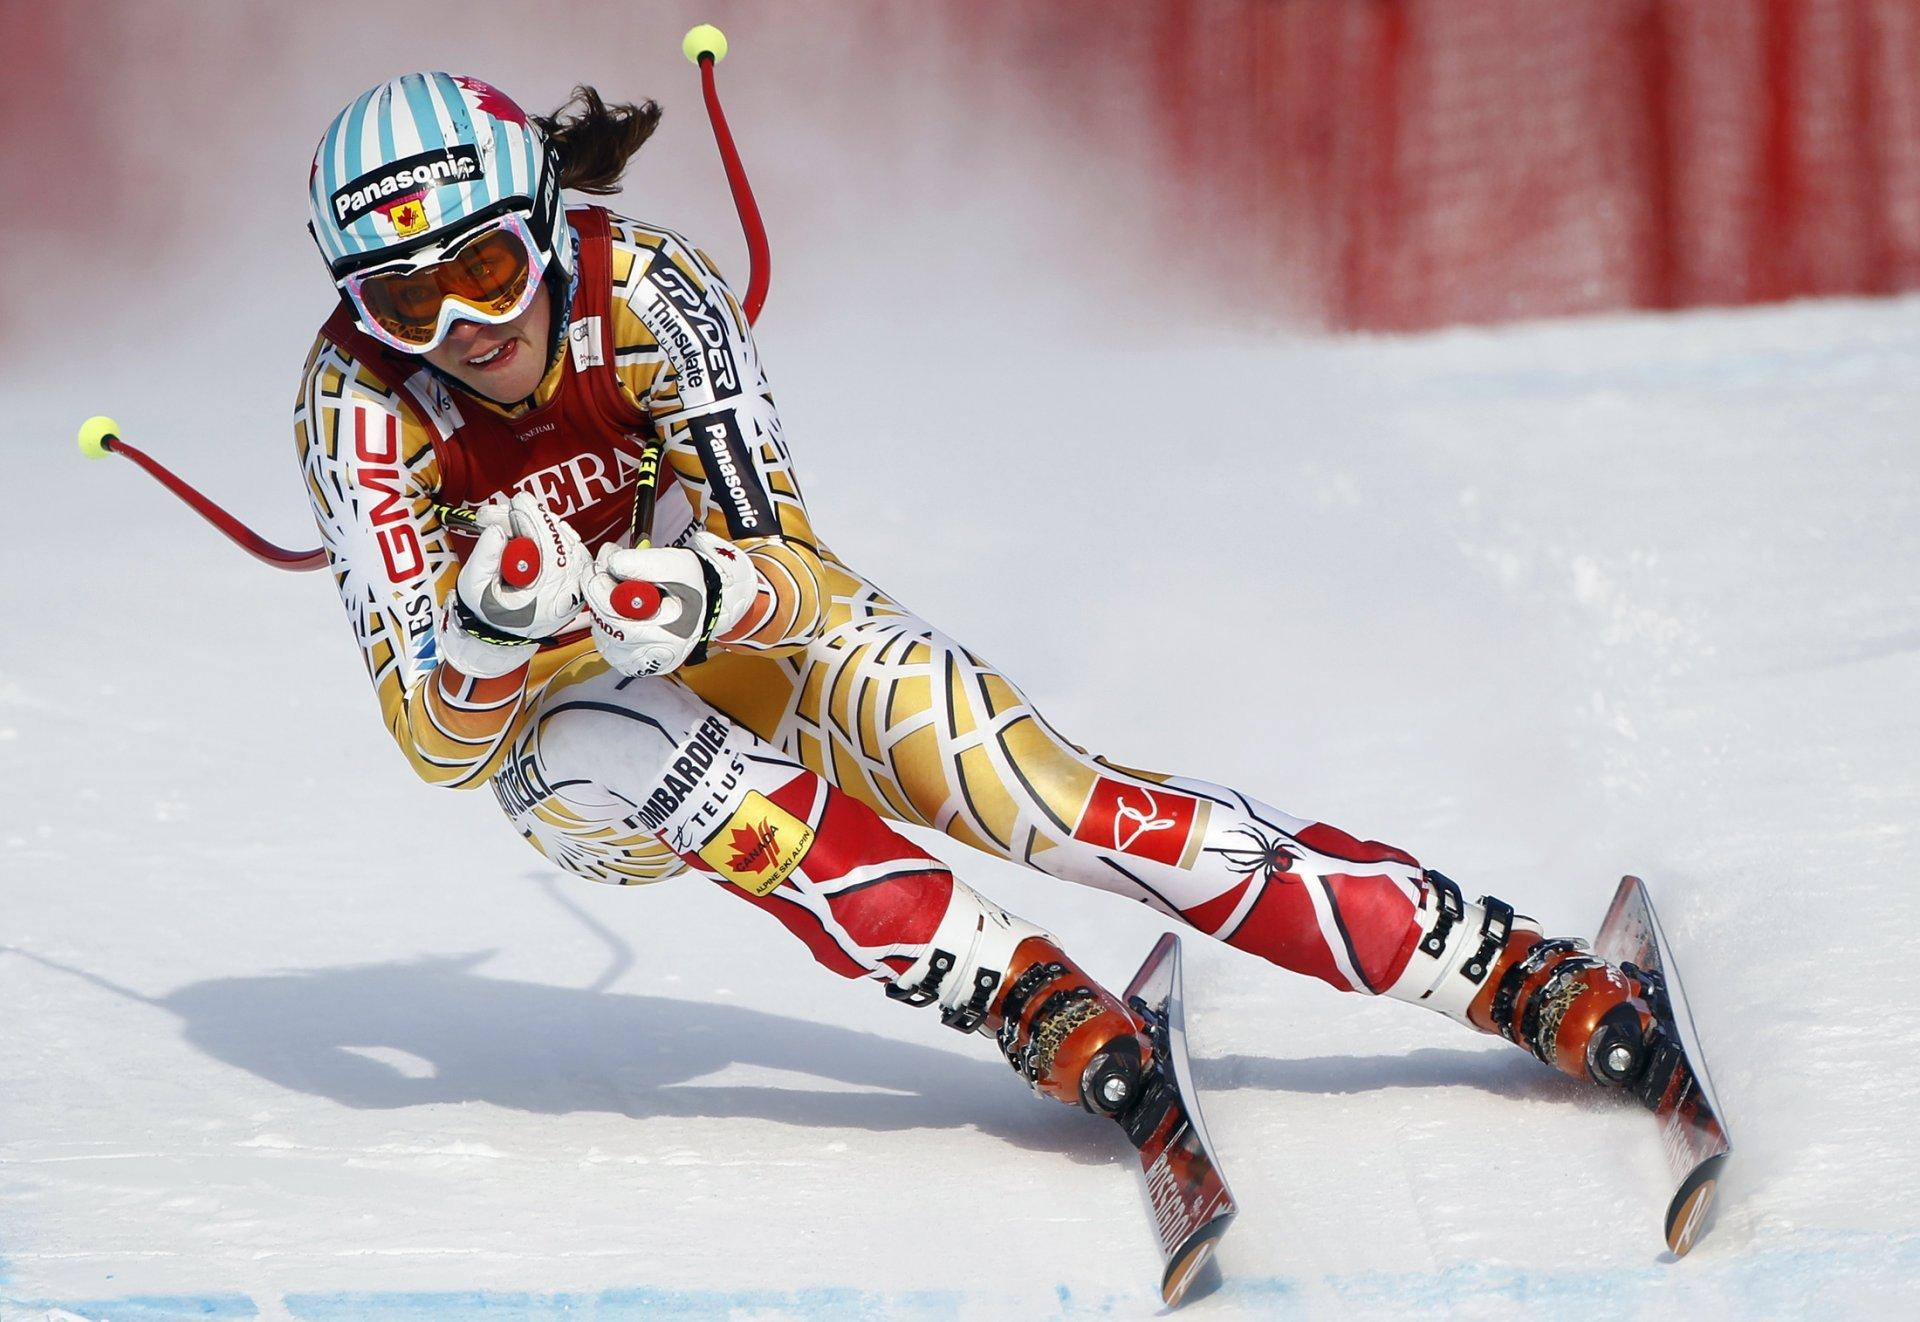 speed bobsleigh freestyle skiing biathlon HD wallpapers